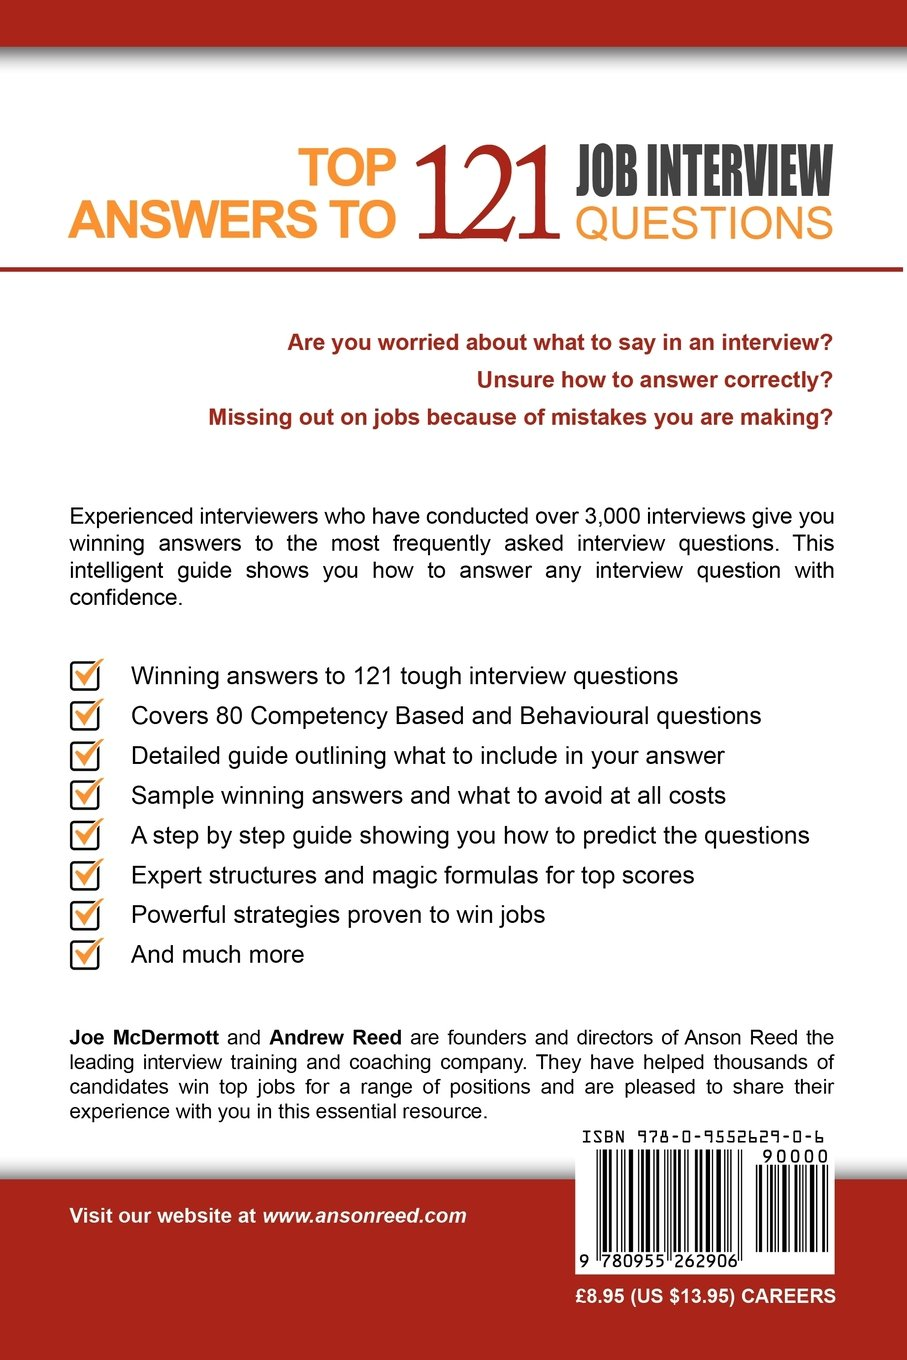 top answers to 121 job interview questions joe mcdermott andrew top answers to 121 job interview questions joe mcdermott andrew reed 9780955262906 amazon com books